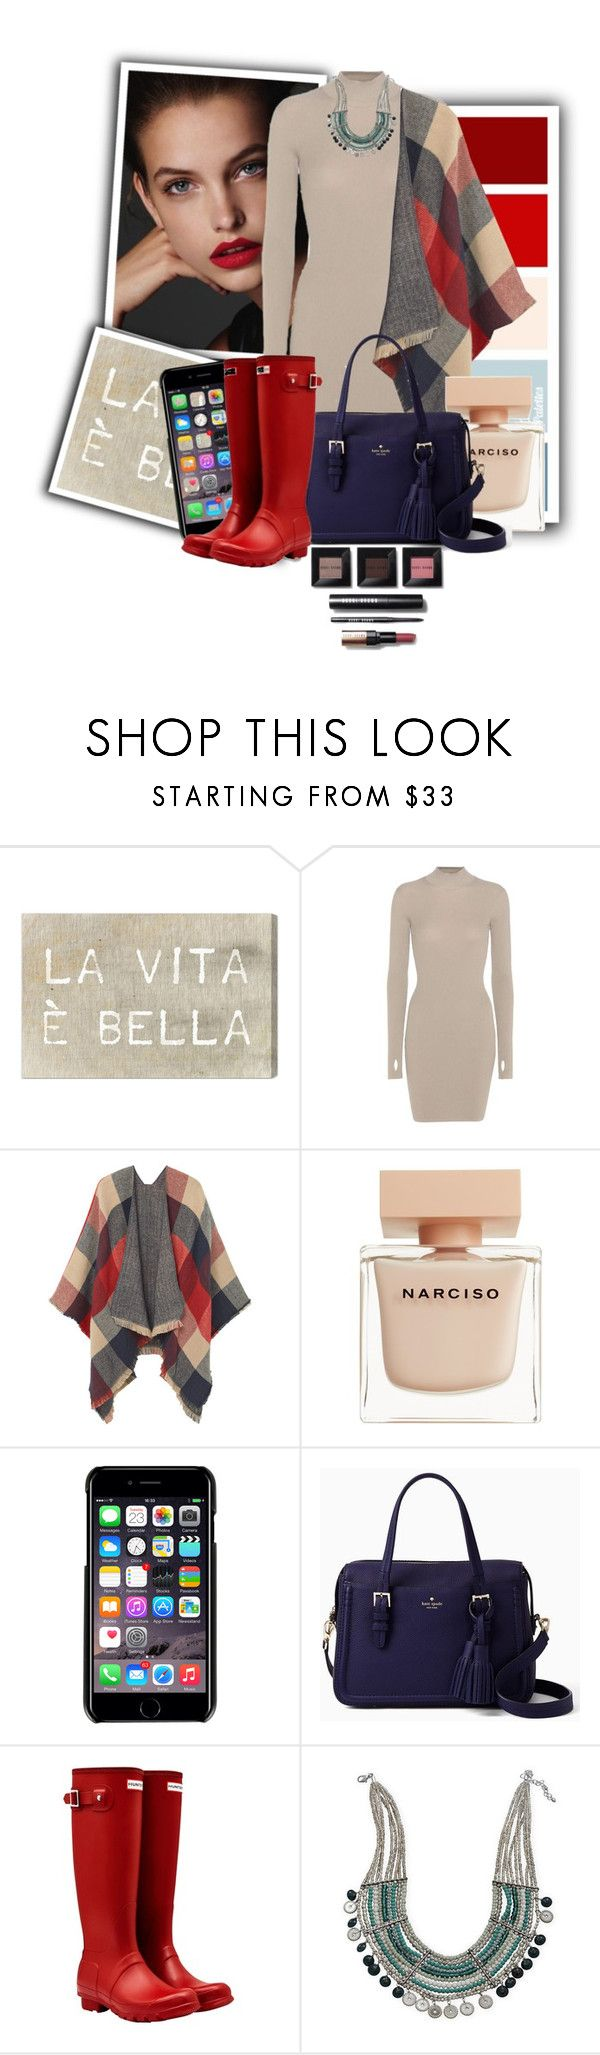 """""""Cardigan #2"""" by ellaa-h ❤ liked on Polyvore featuring Oliver Gal Artist Co., adidas Originals, MANGO, Narciso Rodriguez, Dolce&Gabbana, Kate Spade, Hunter, BillyTheTree and Bobbi Brown Cosmetics"""